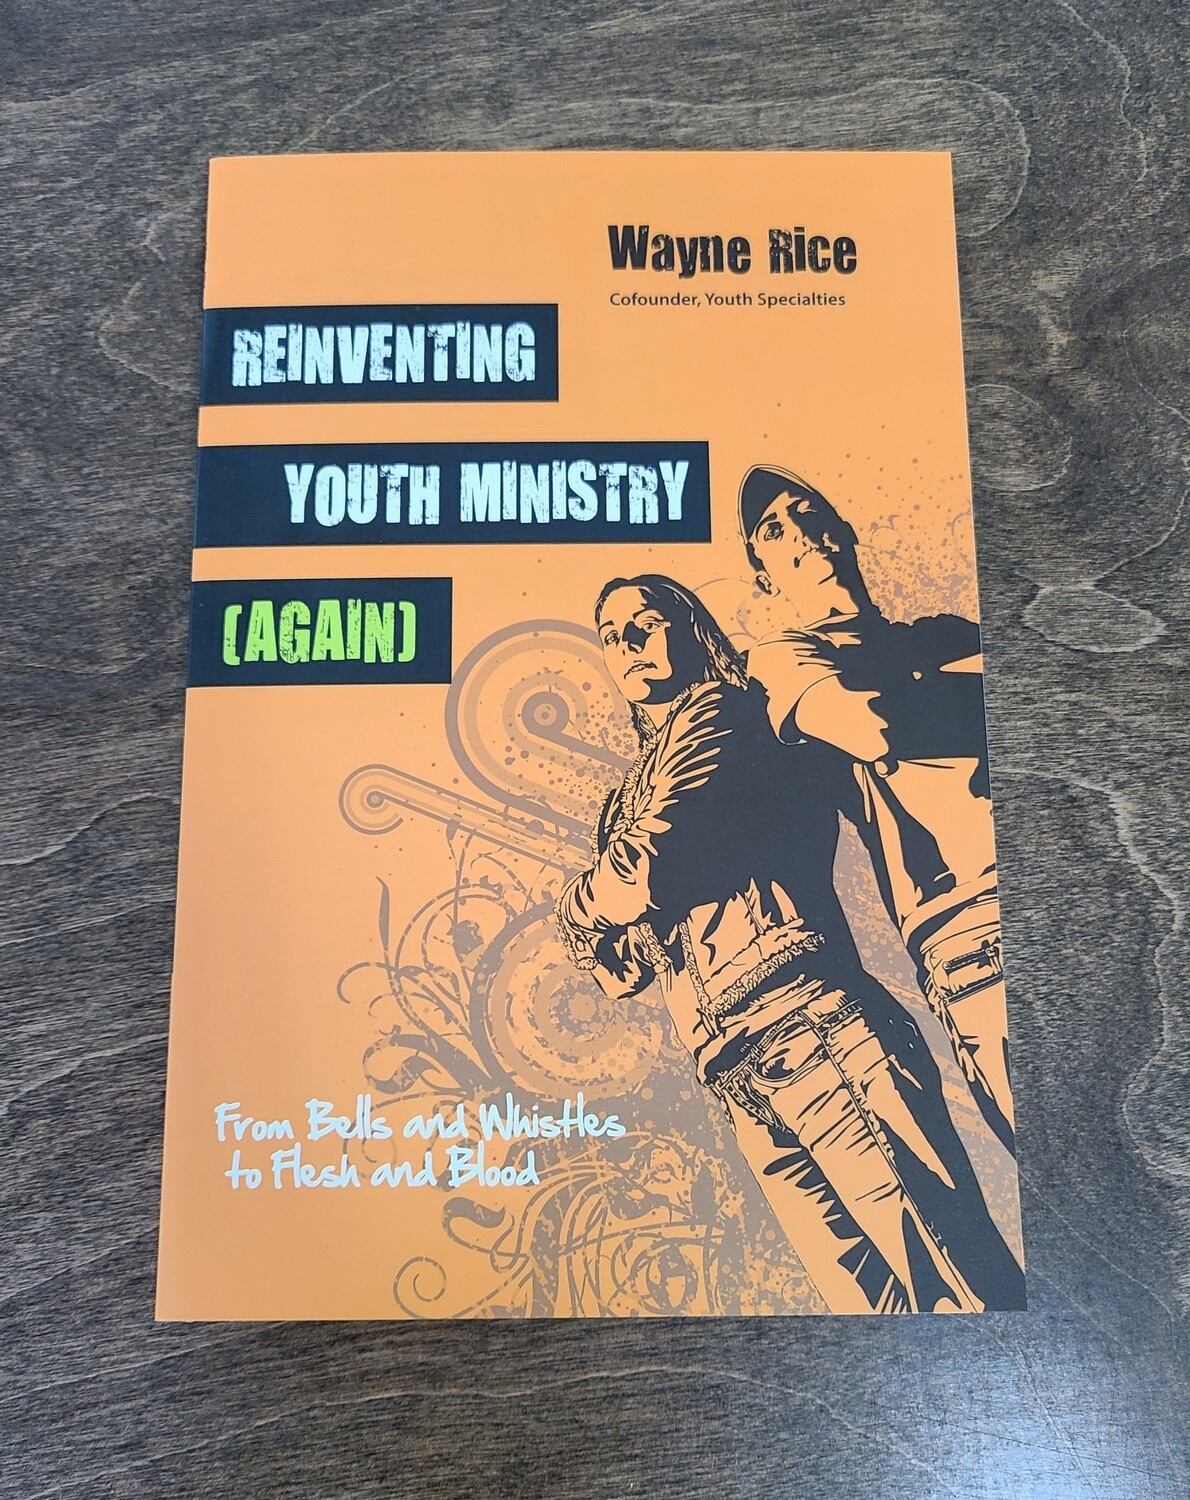 Reinventing Youth Ministry (Again) by Wayne Rice